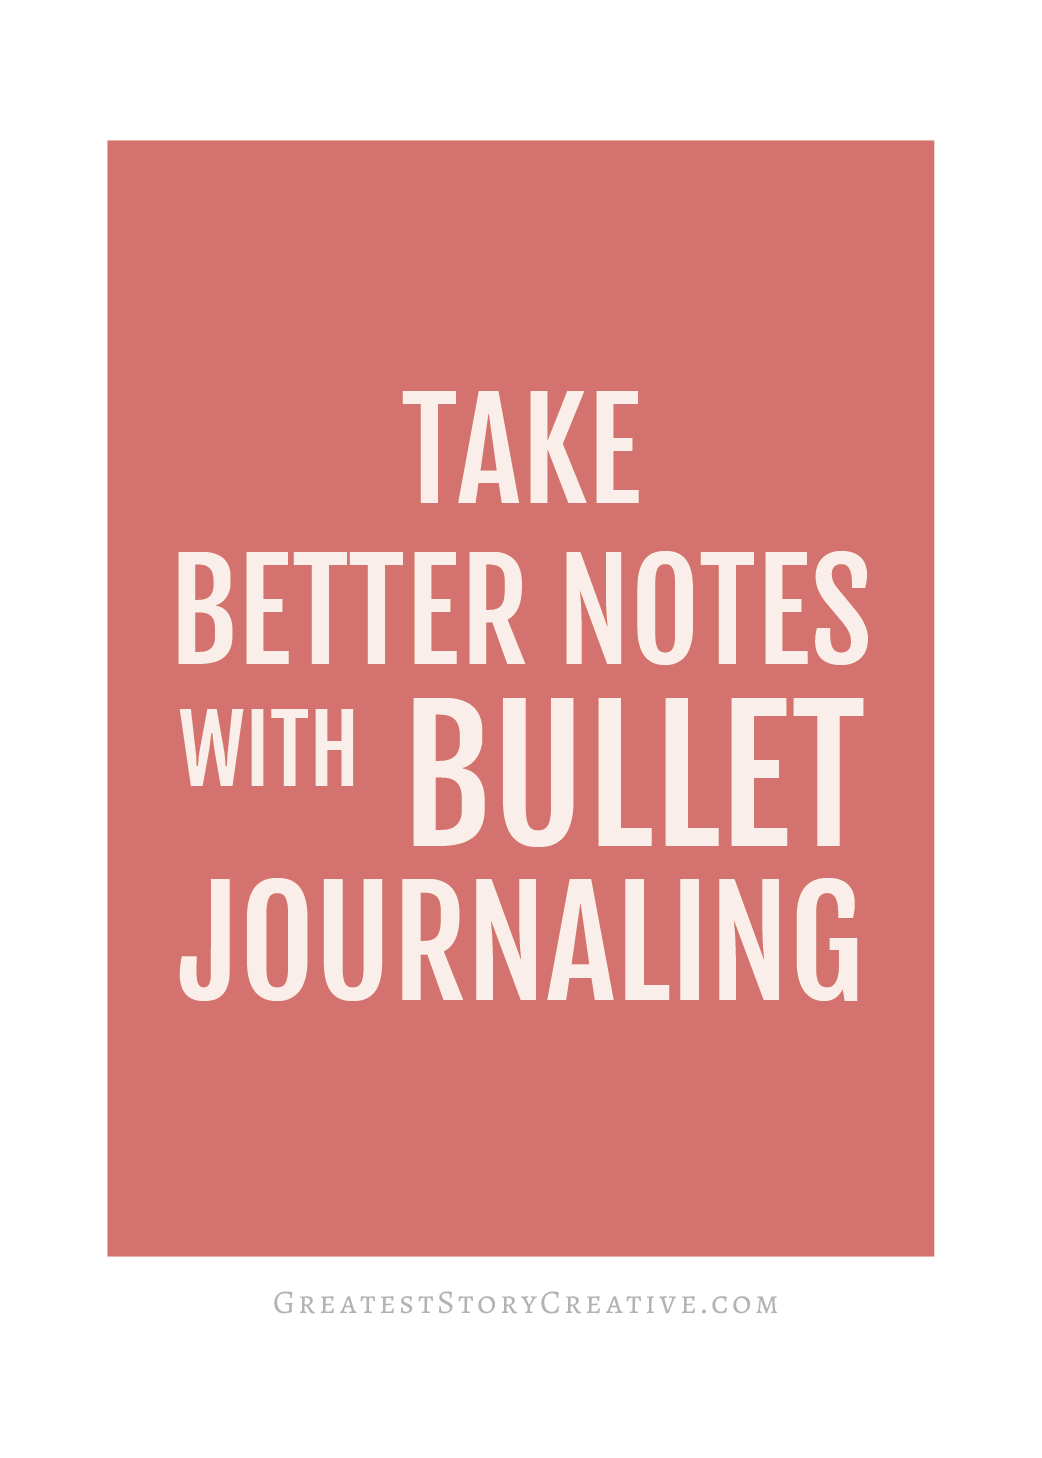 Take Better Notes with Bullet Journaling | Greatest Story for Business blog